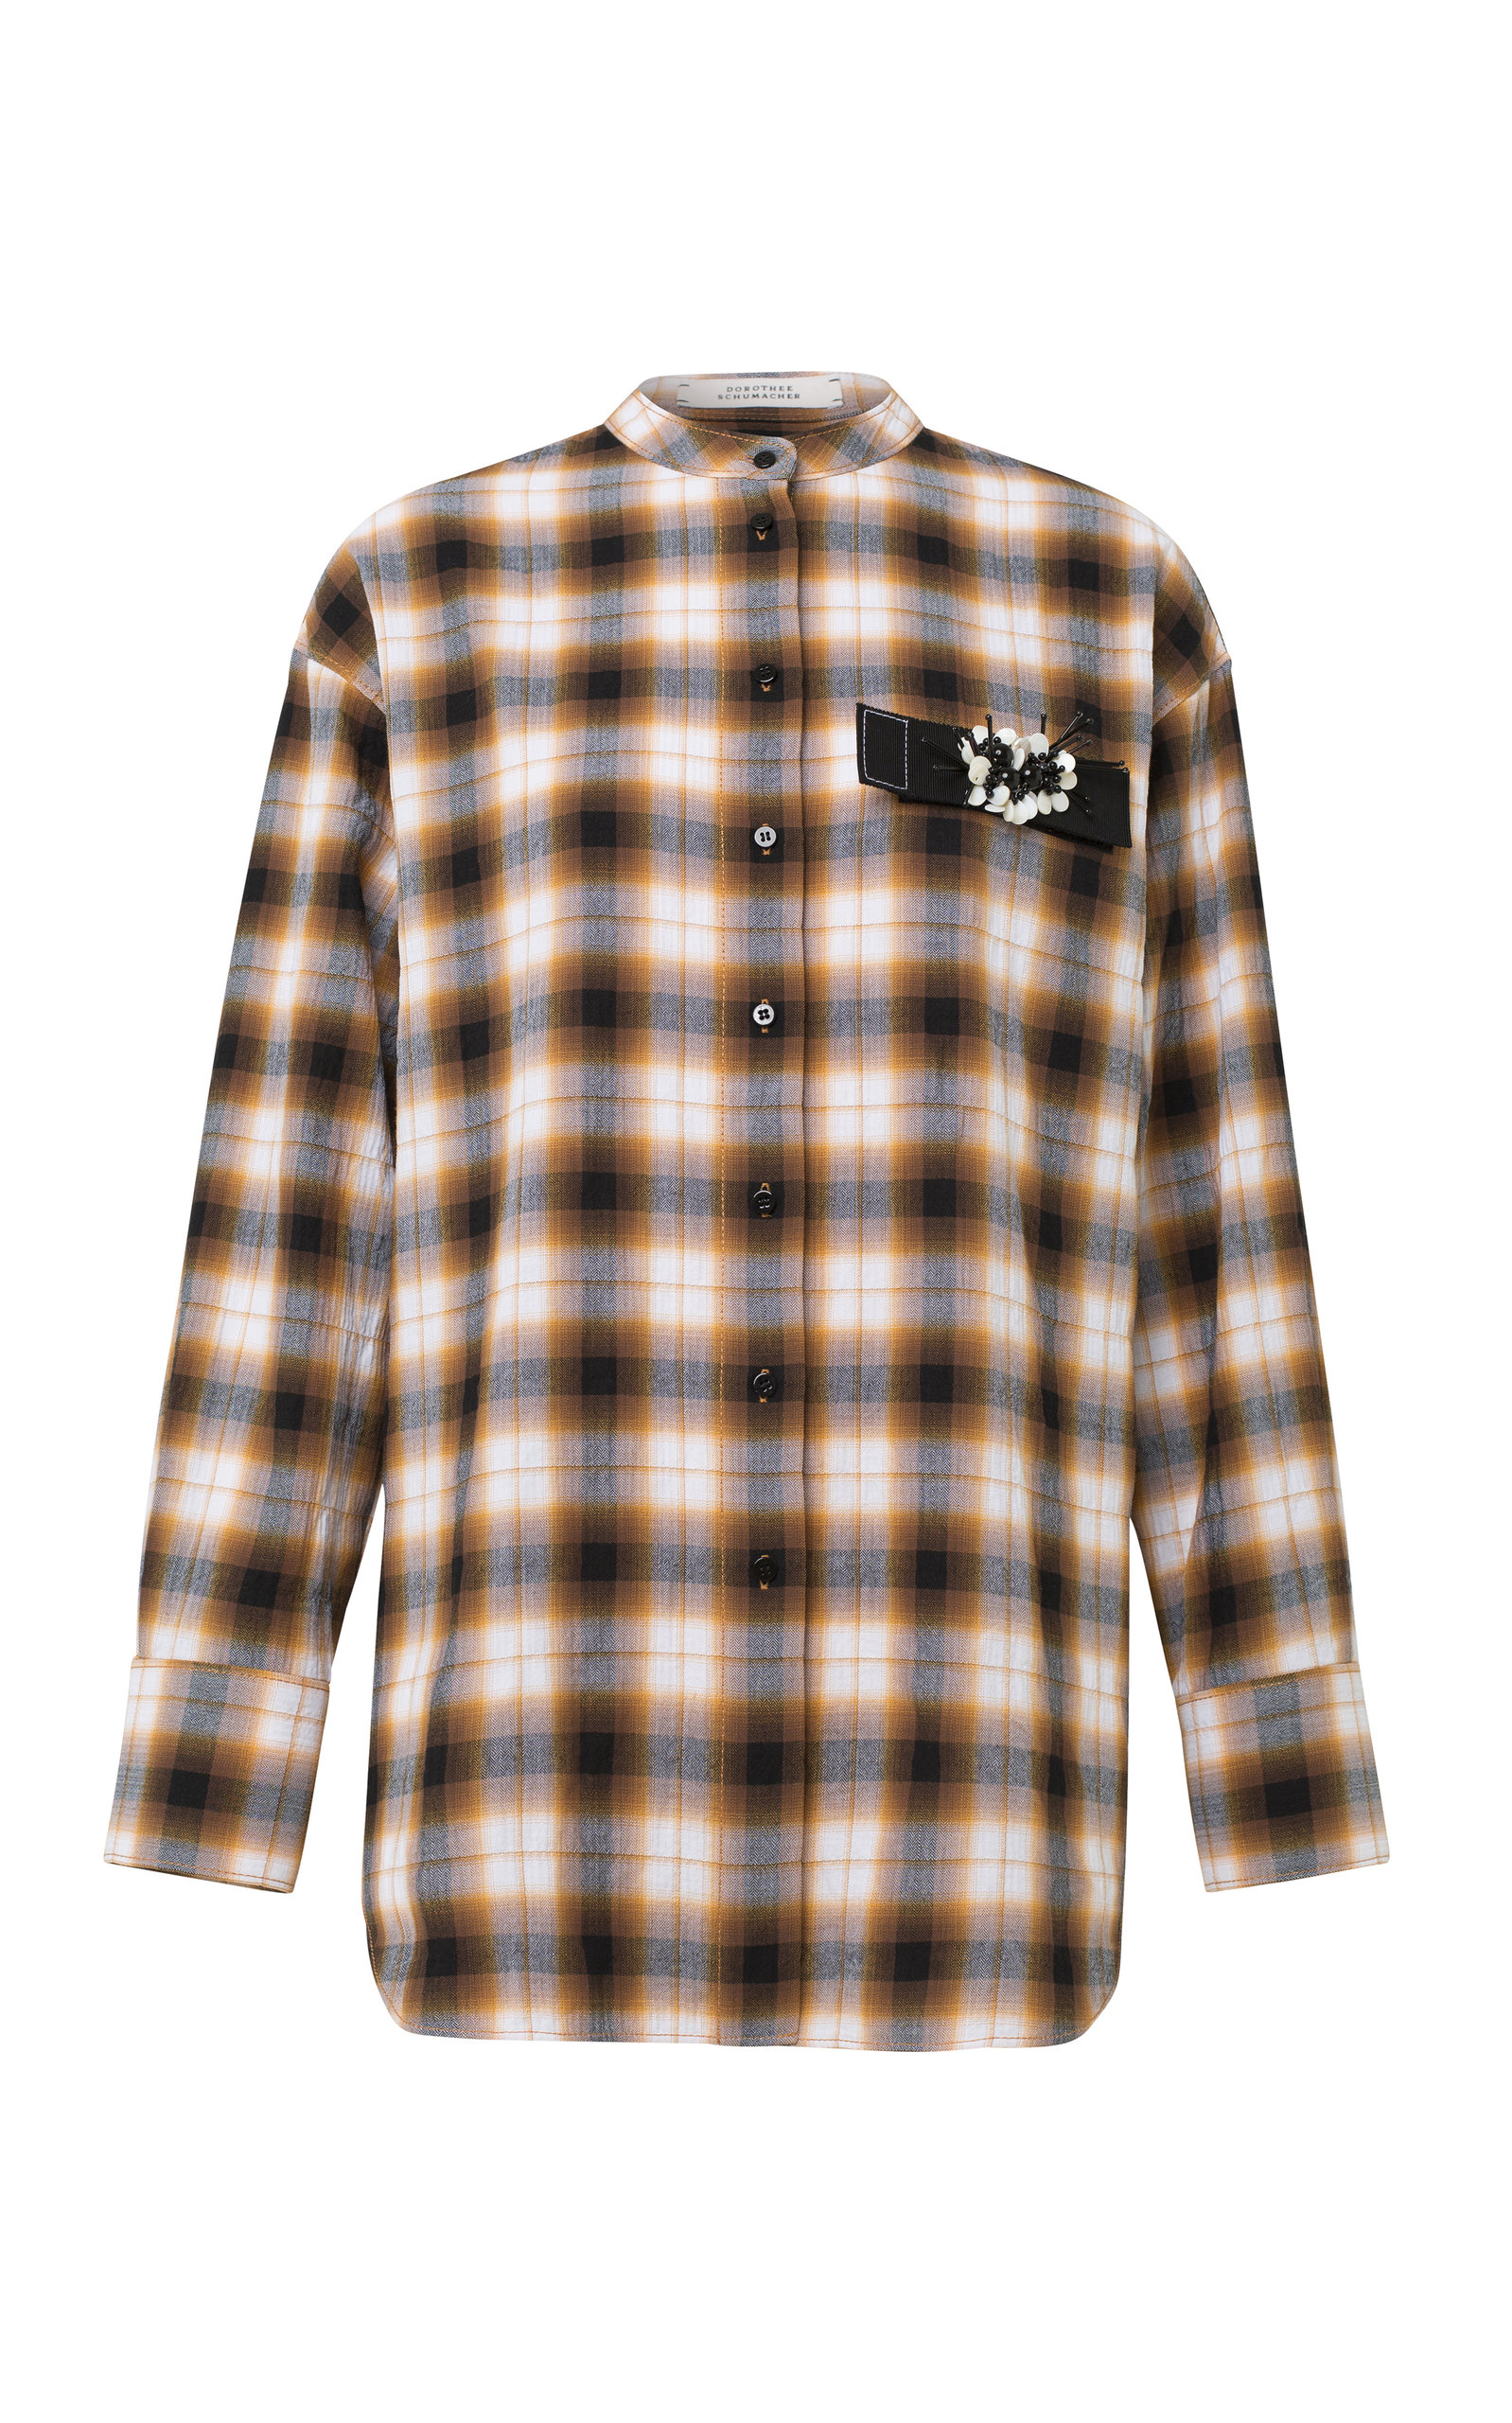 Fragmented Checks Plaid Cotton-Blend Top in Orange